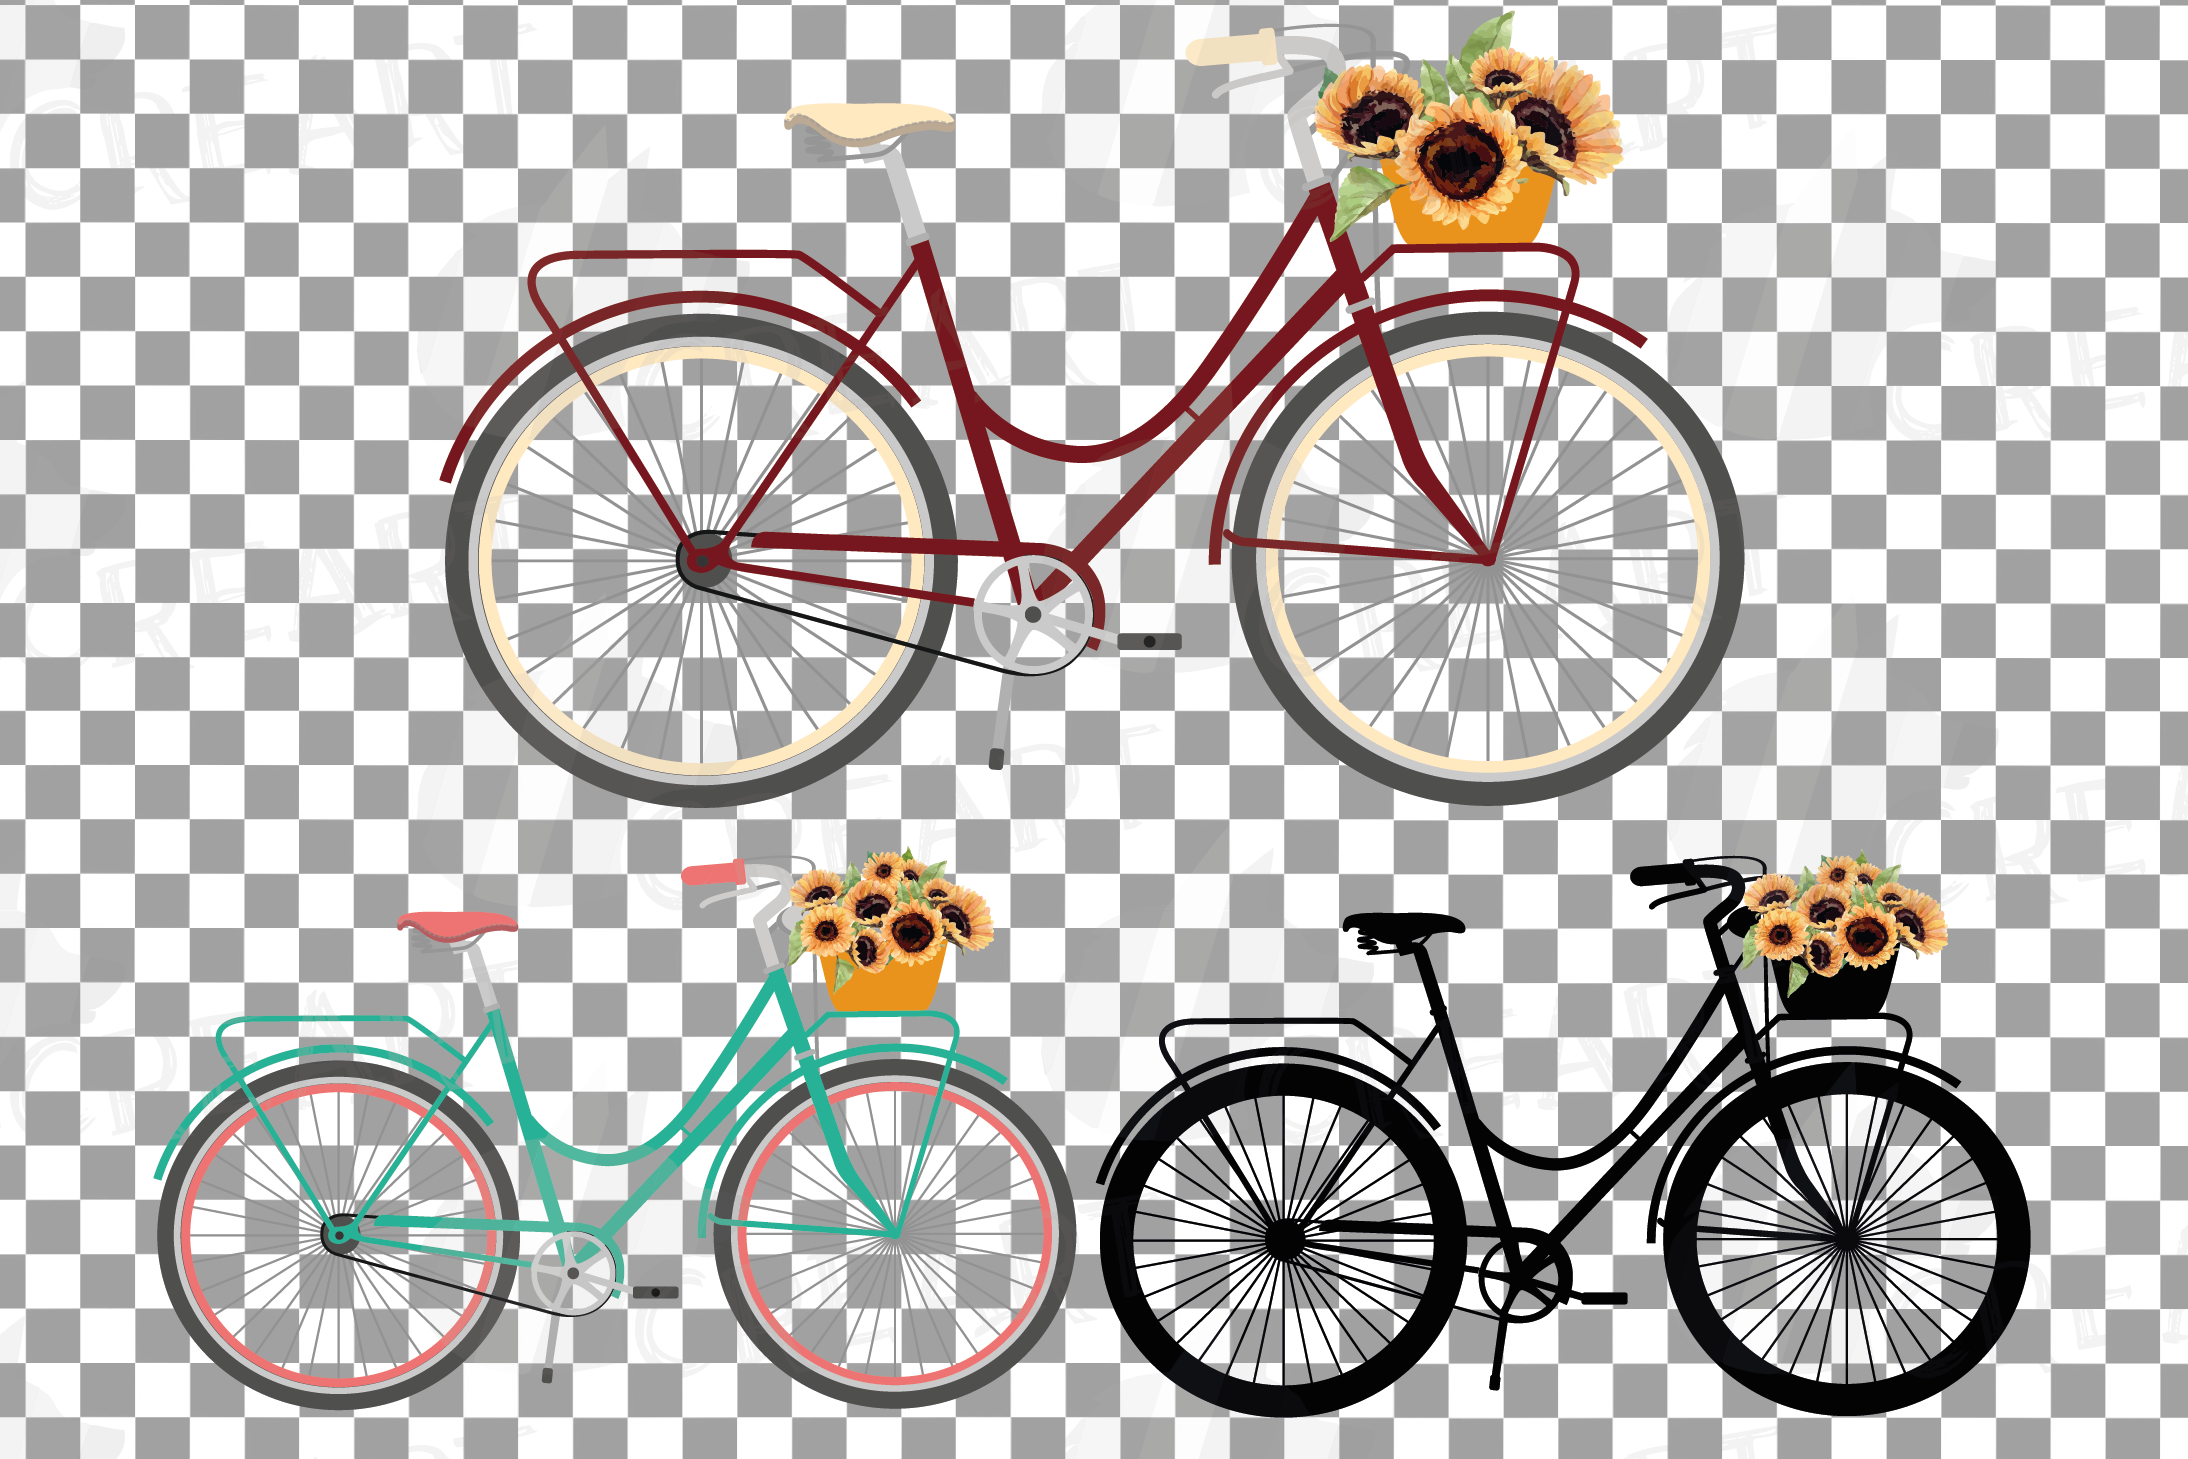 Sunflower bouquets bicycles clip art. Floral bikes decor png example image 2